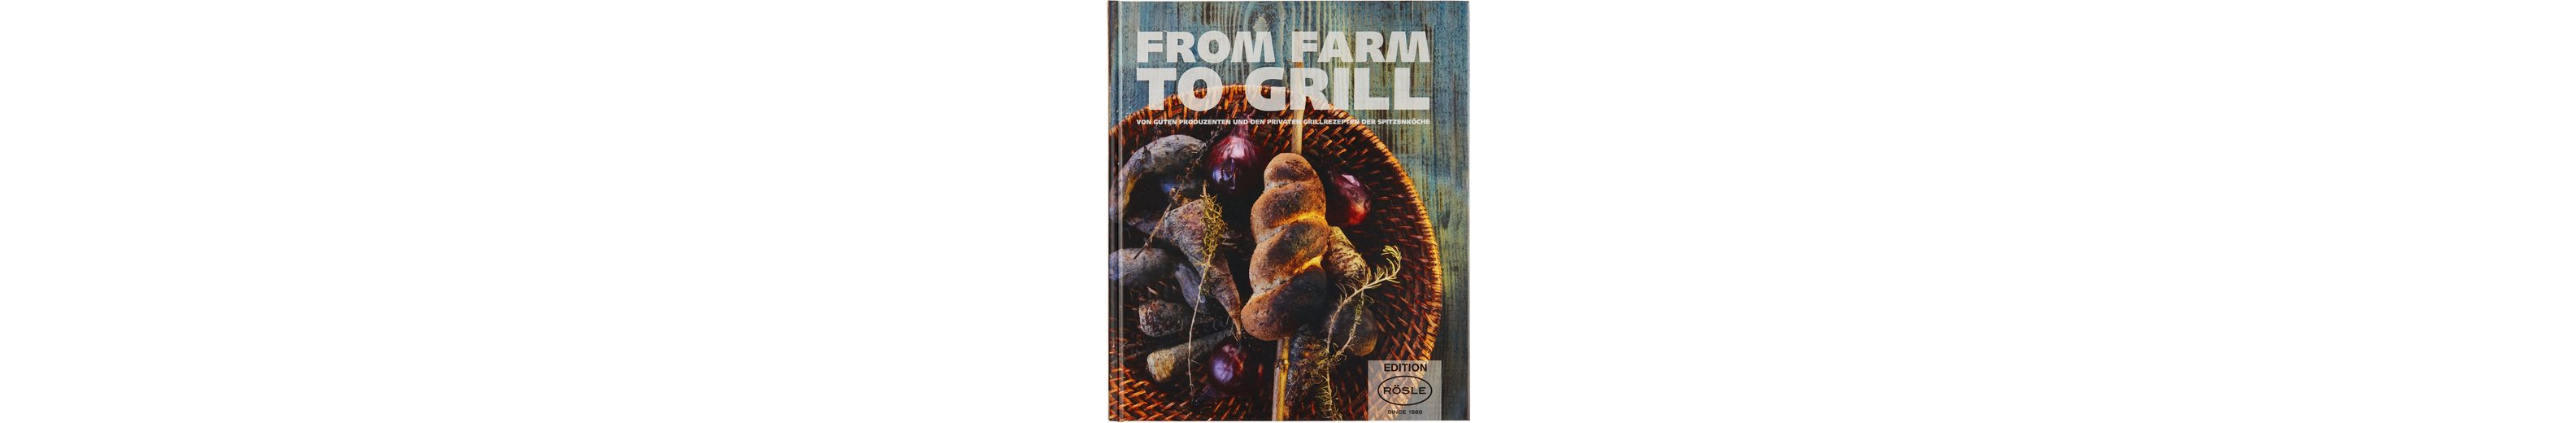 RÖSLE Grillbuch, »FROM FARM TO GRILL«